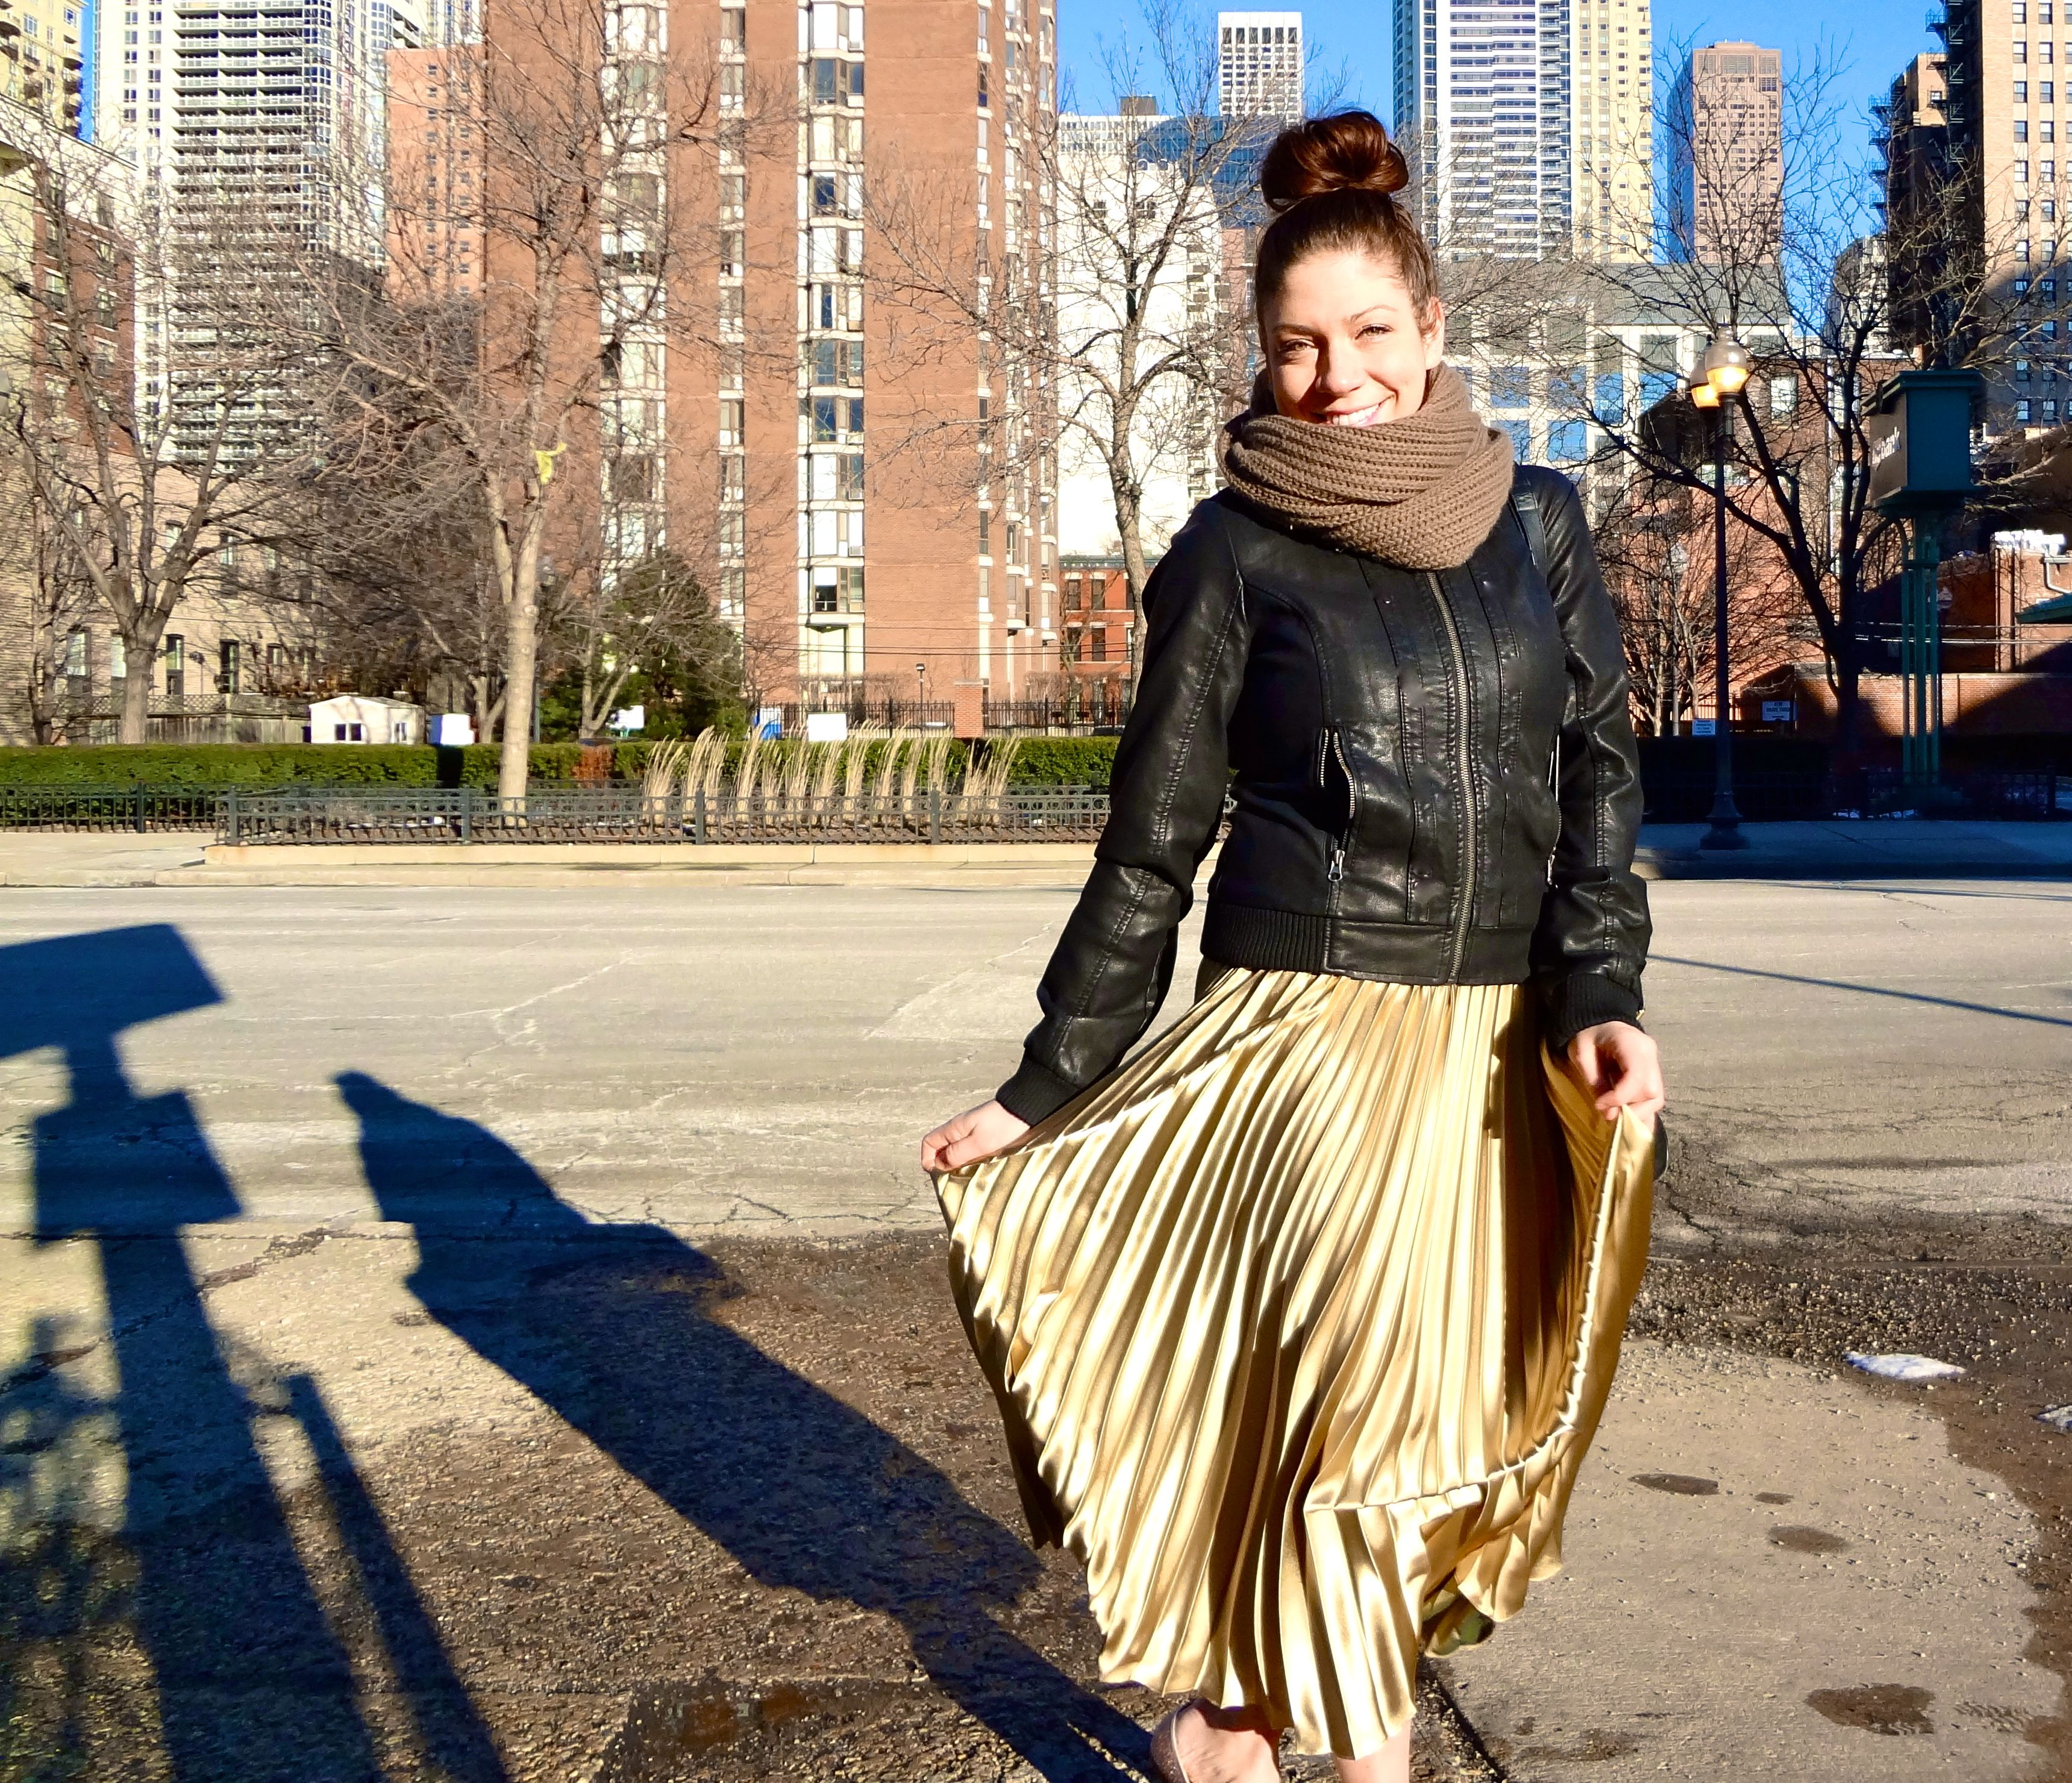 What I'm Wearing: Pretty Accordion Pleats  A few weekends back, when I ventured out to the Vintage Bazaar in Chicago, I fell in love with this pretty, vertically-pleated skirt and knew I had to have it.  I love how the pleats move fluidly when I walk . It almost looks like somewhat of an optical allure, no?  https://amongotherthings.com/2012/02/how-to-wear-accordion-pleats-max-skirt.html